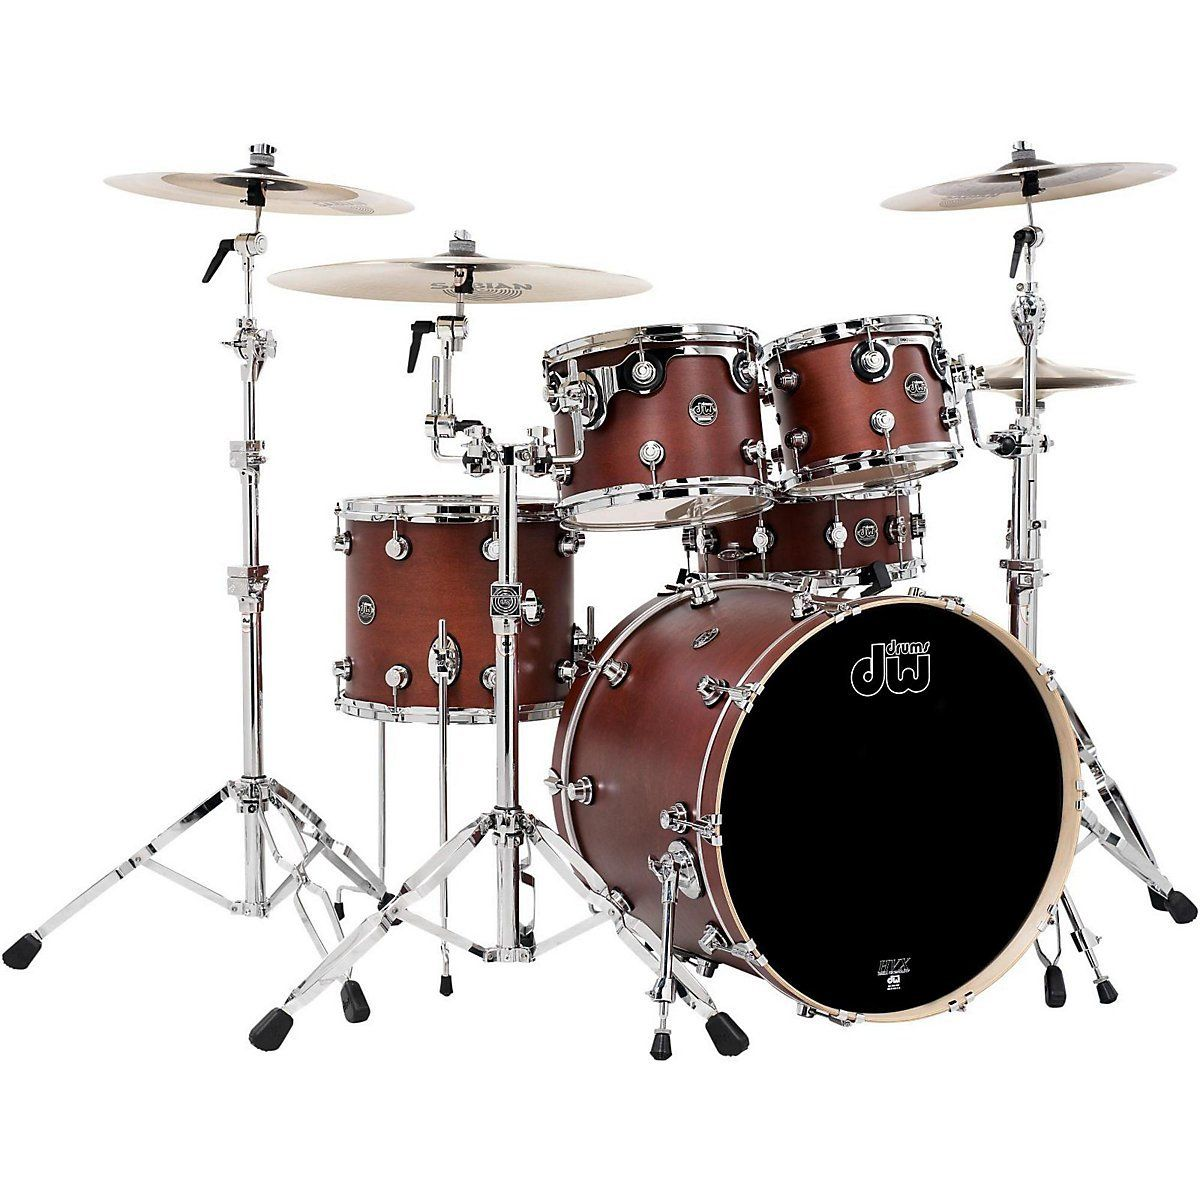 Are you looking for a new drum set? You can find a selection of DW DRUMS including this DW PERFORMANCE SERIES 5 PIECE DRUM SHELL PACK IN TOBACCO STAIN OIL WITH CHROME HARDWARE (free shipping) at    http://jsmartmusic.com